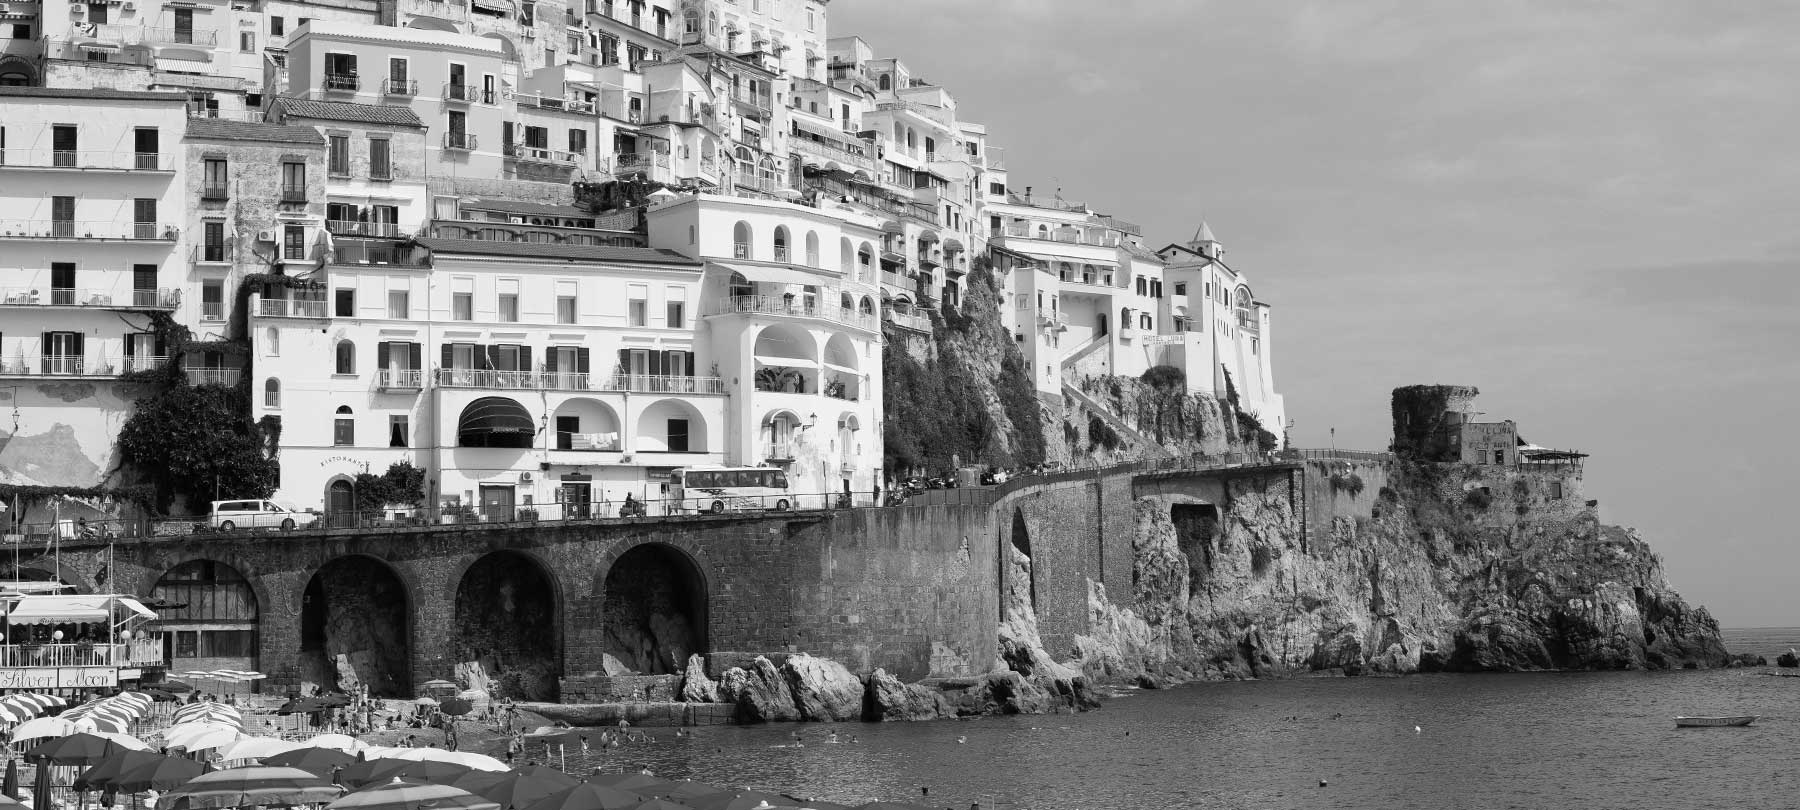 Amalfi coast web agency